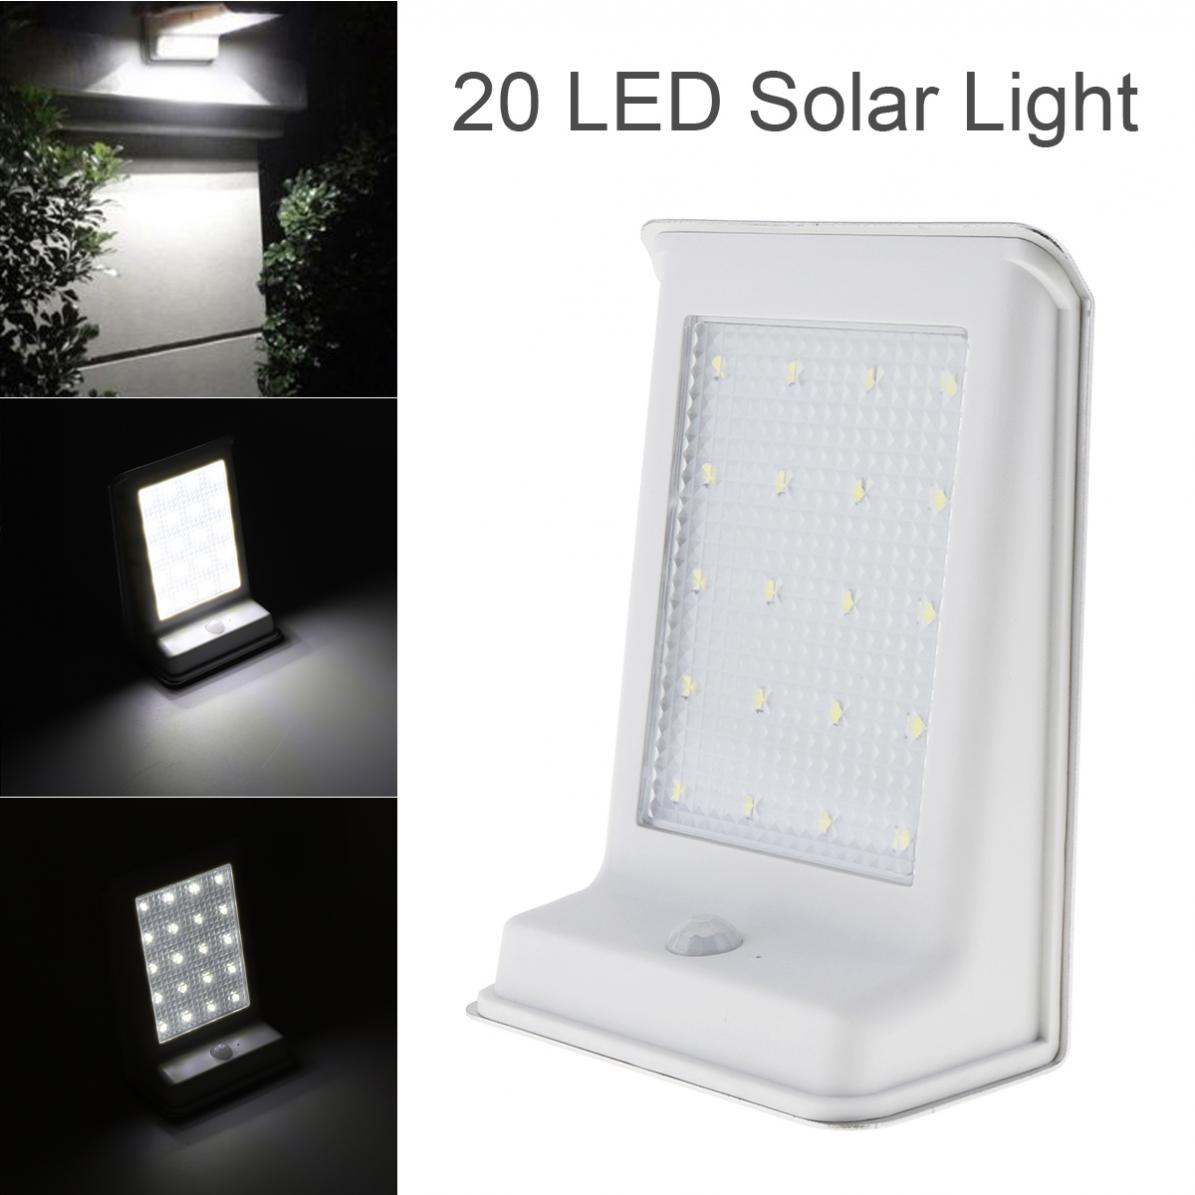 Durable Waterproof 20 LED Solar Power Outdoor Security Light Lamp PIR Motion Sensor